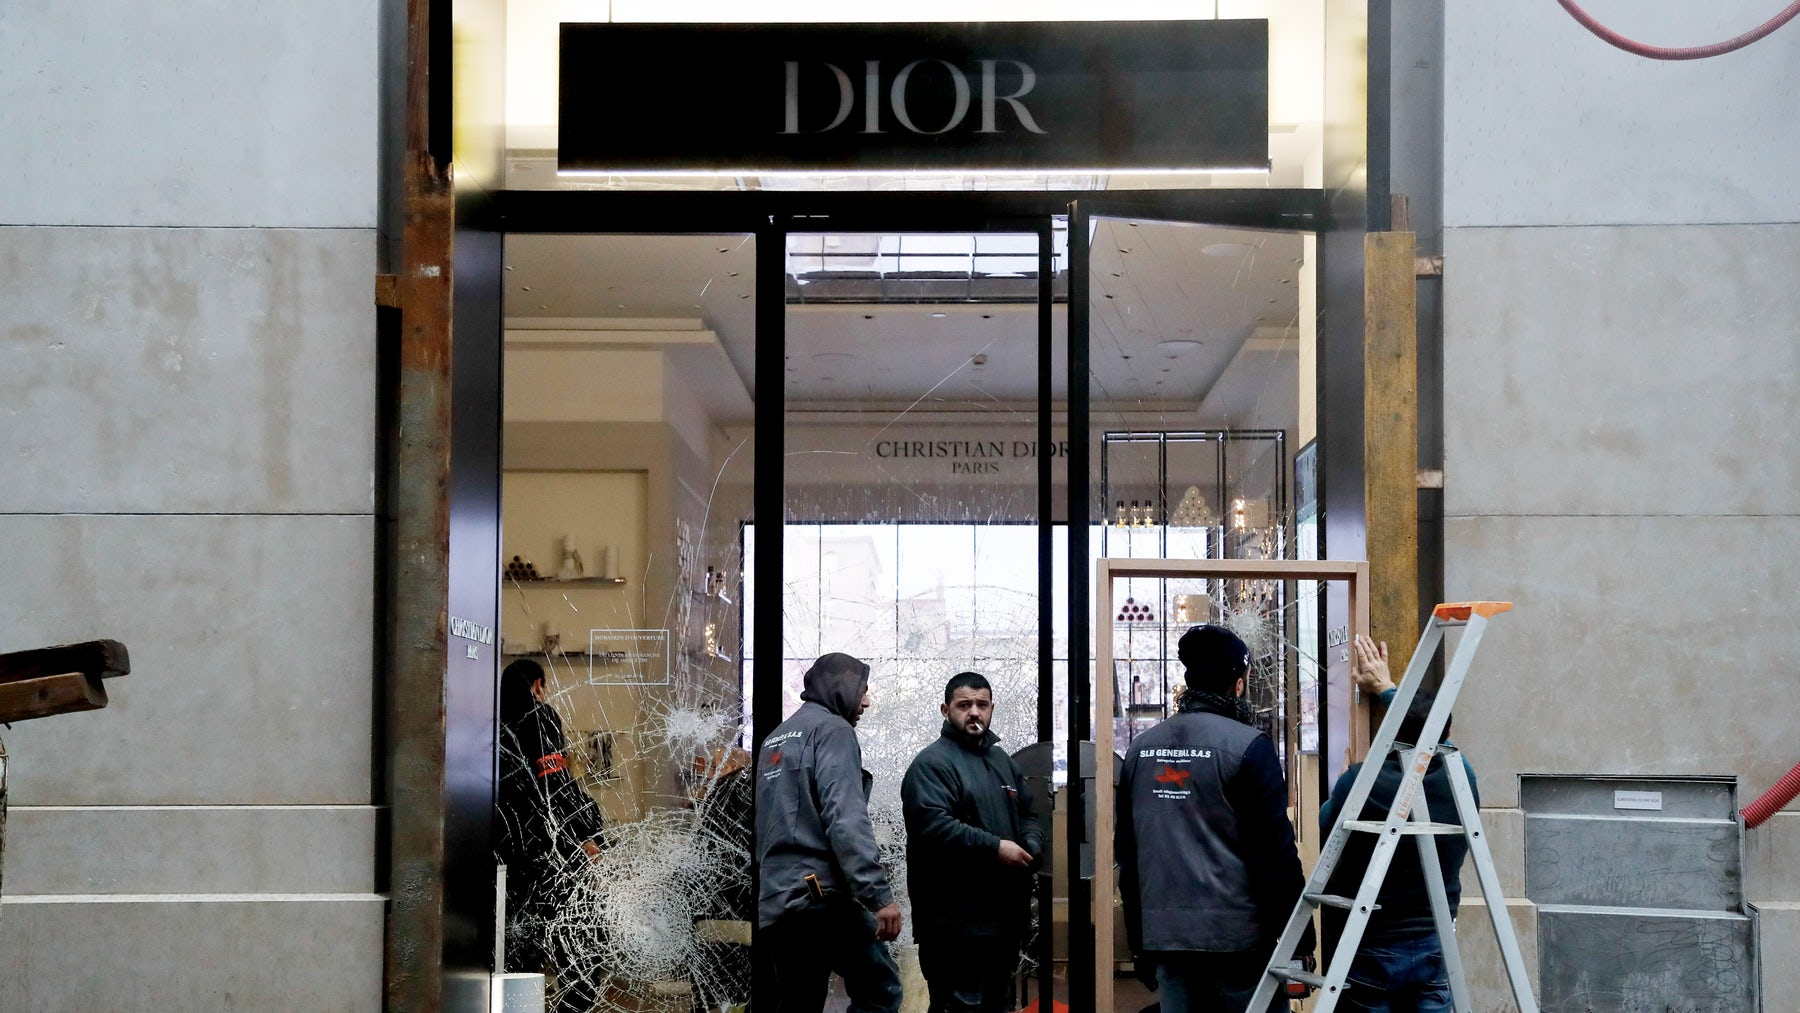 Workers repair the Dior shop window on the Champs-Elysees avenue in Paris after a rally by yellow vest protestors   Source: Getty Images